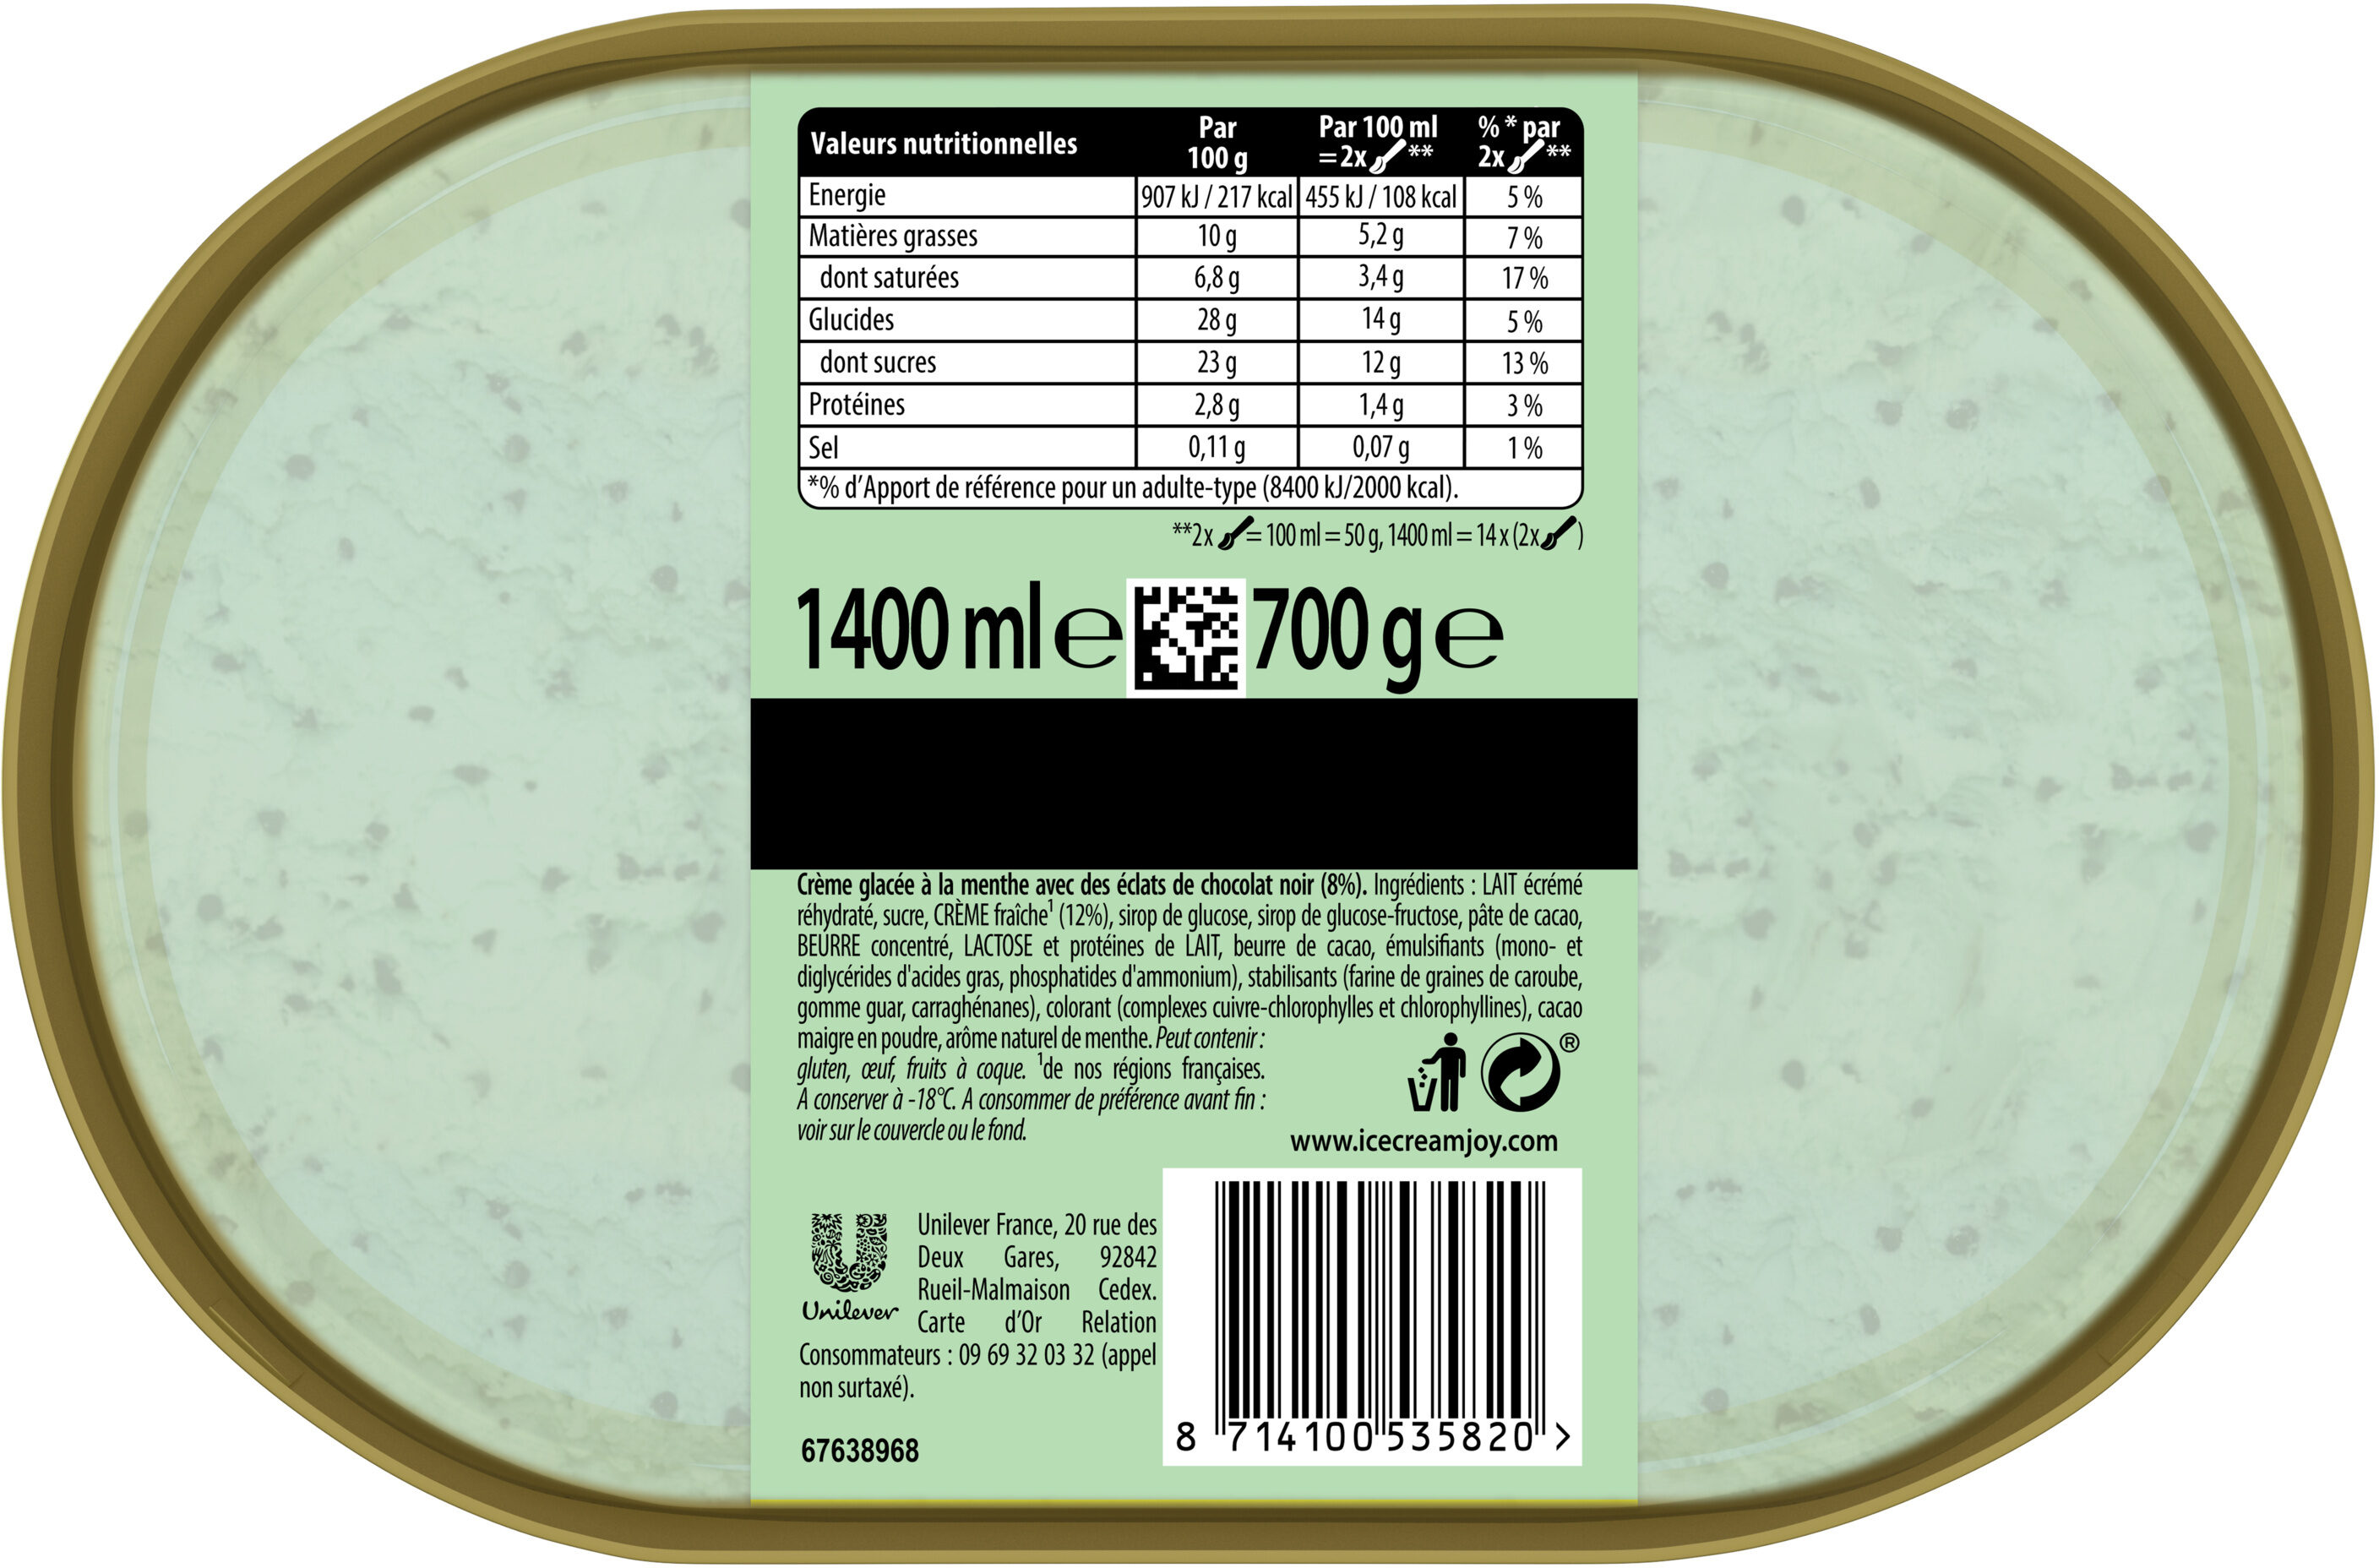 Carte D'or Les Authentiques Glace Menthe Chocolat 1.4l - Nutrition facts - fr